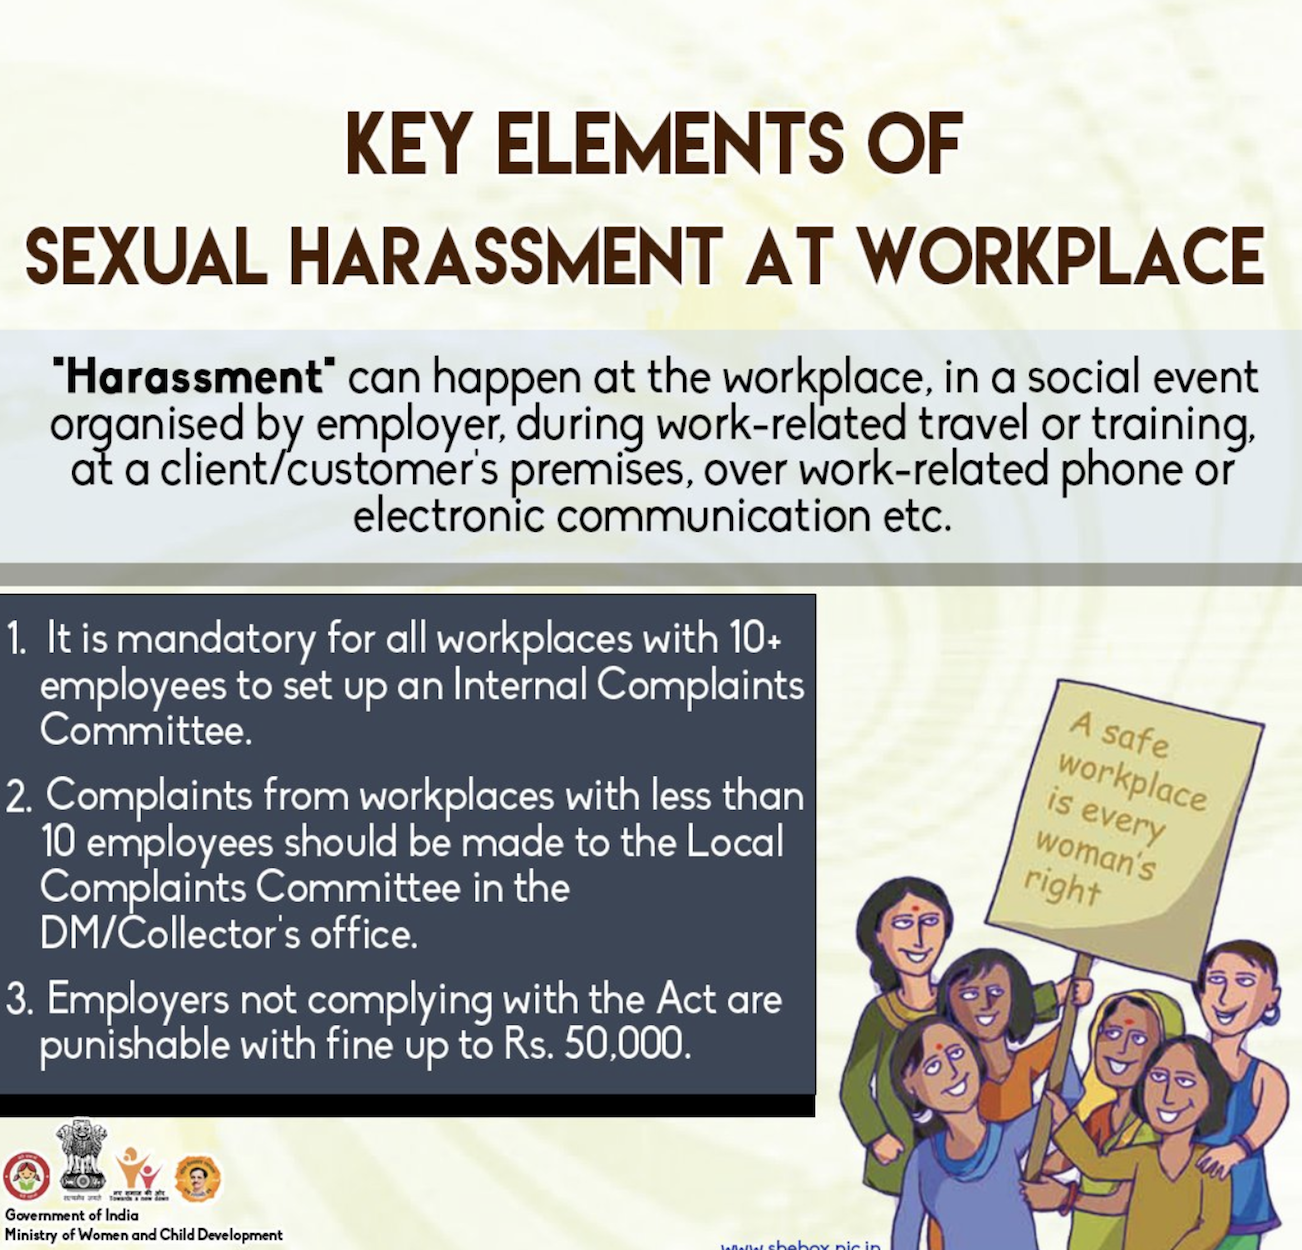 Three elements to sexual harassment